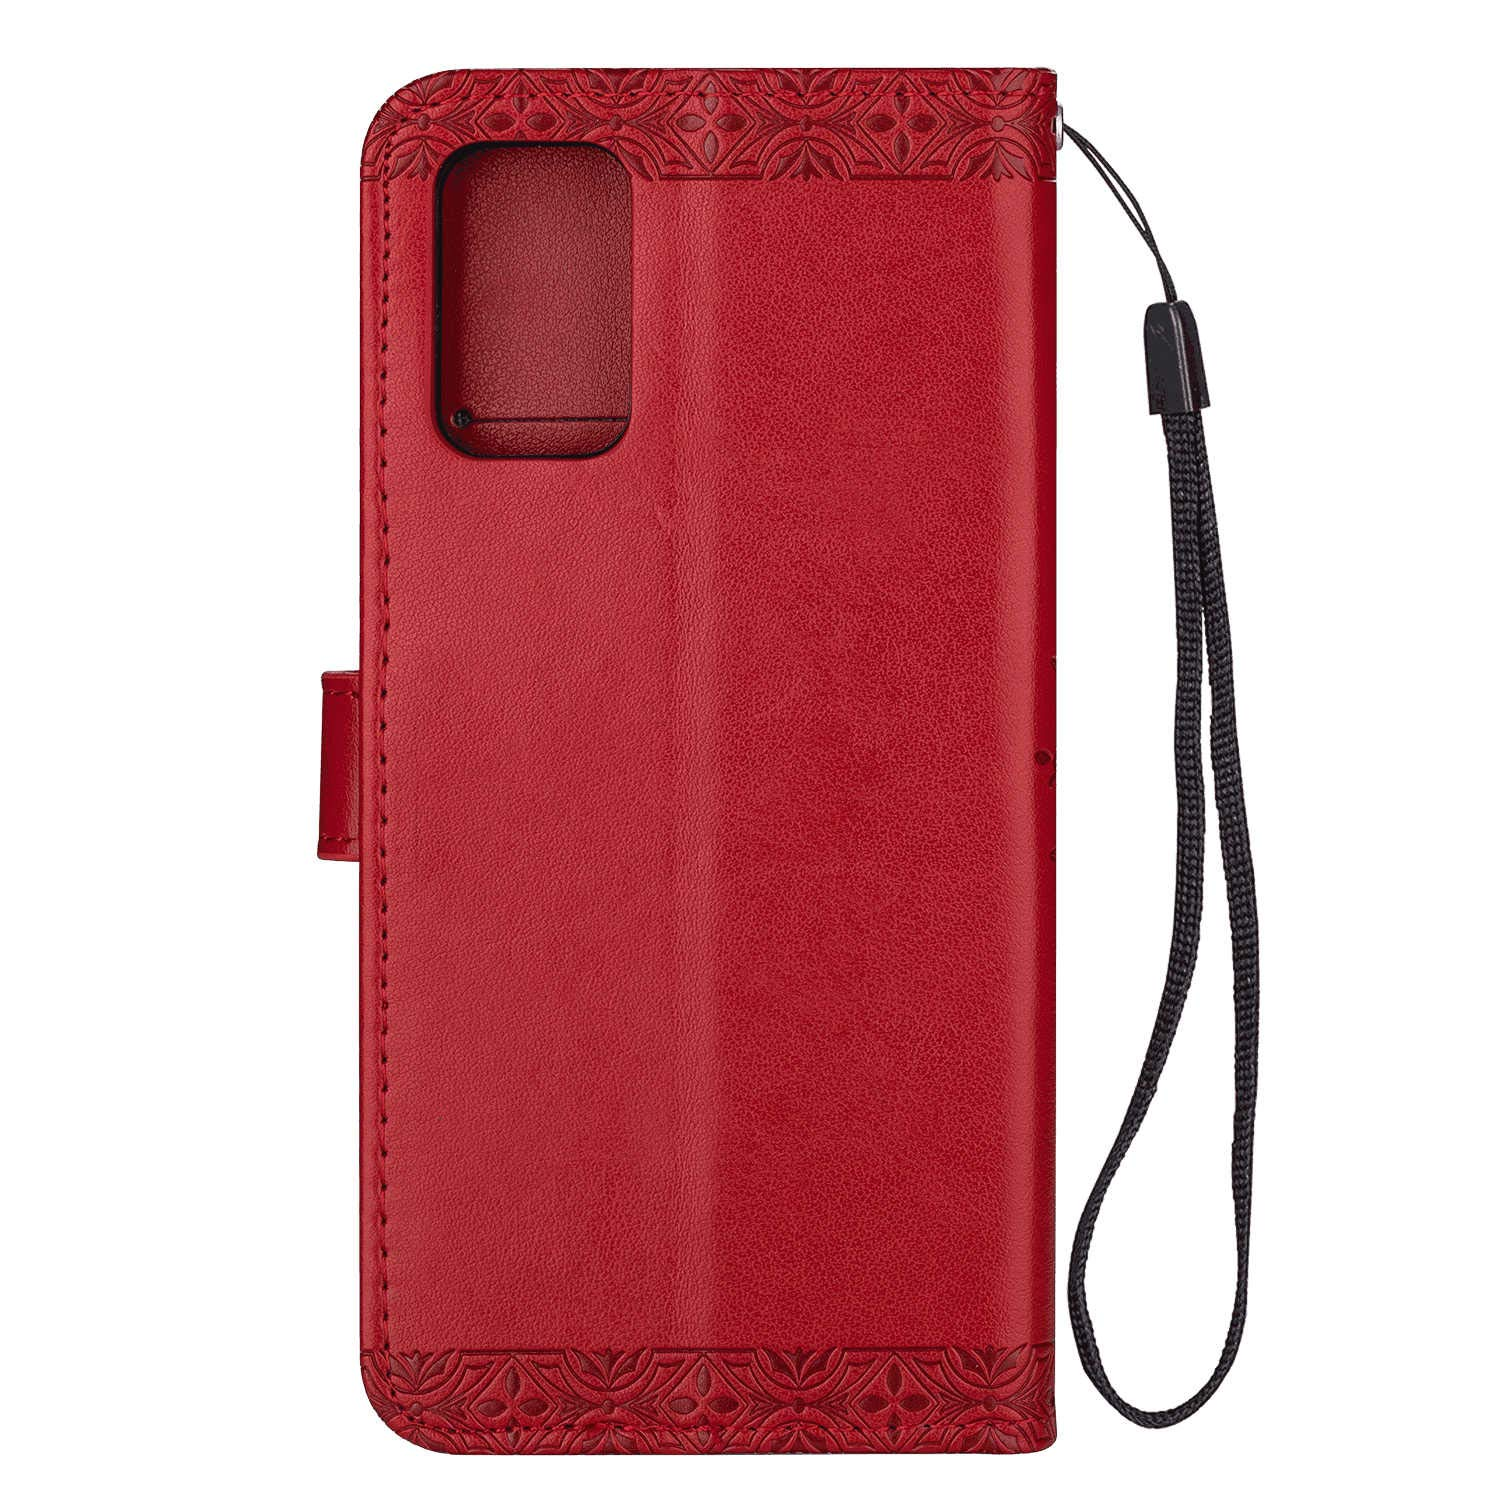 Leather Flip Case Fit for Samsung Galaxy S20 Plus Extra-Shockproof Kickstand Card Holders Wallet Cover for Samsung Galaxy S20 Plus